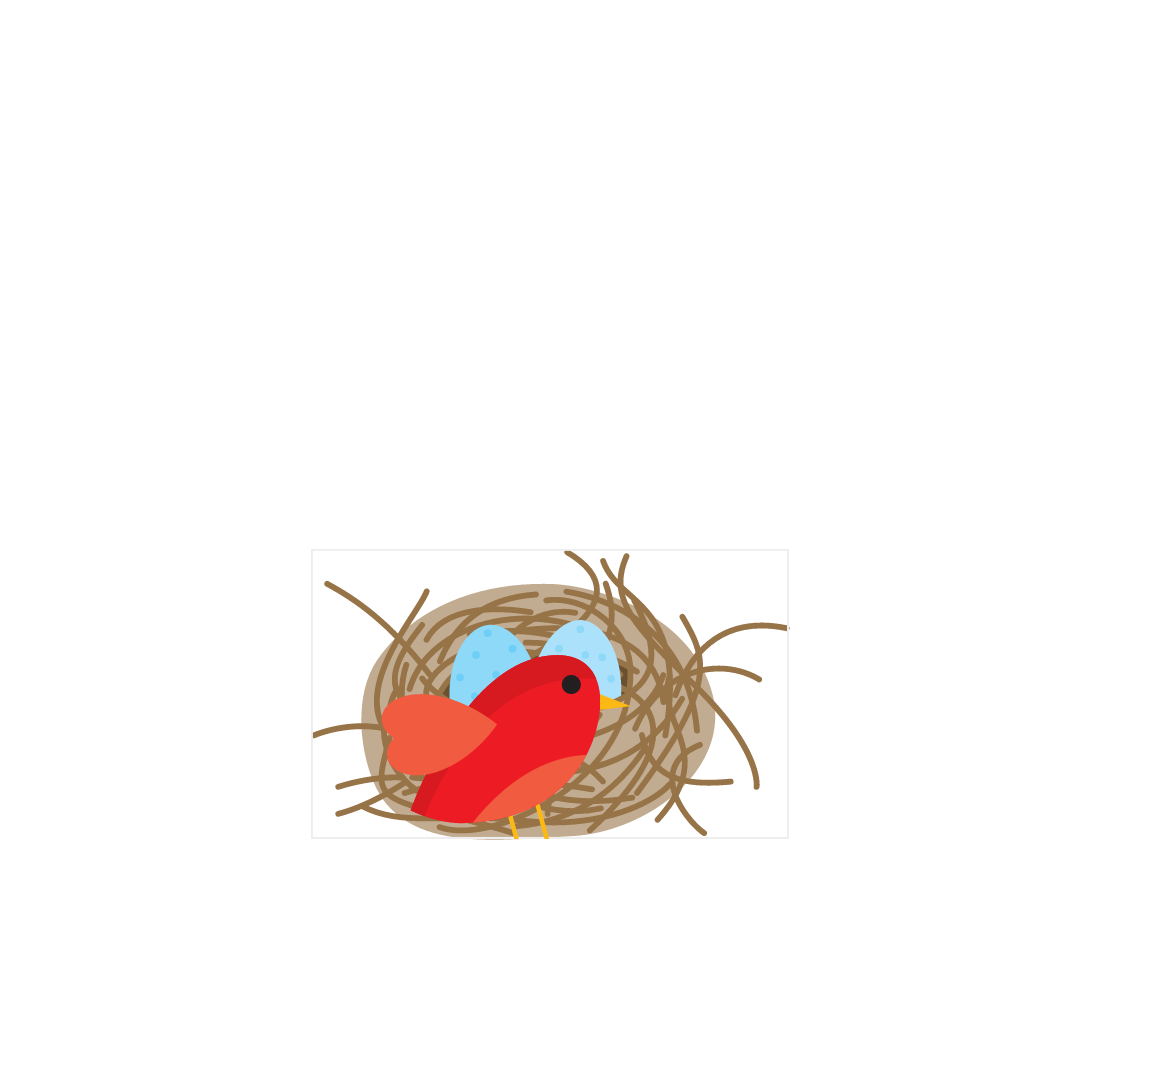 A visual respresentation of the nested svg element positioned on top of (or around) the nest, with the bird positioned inside of it.